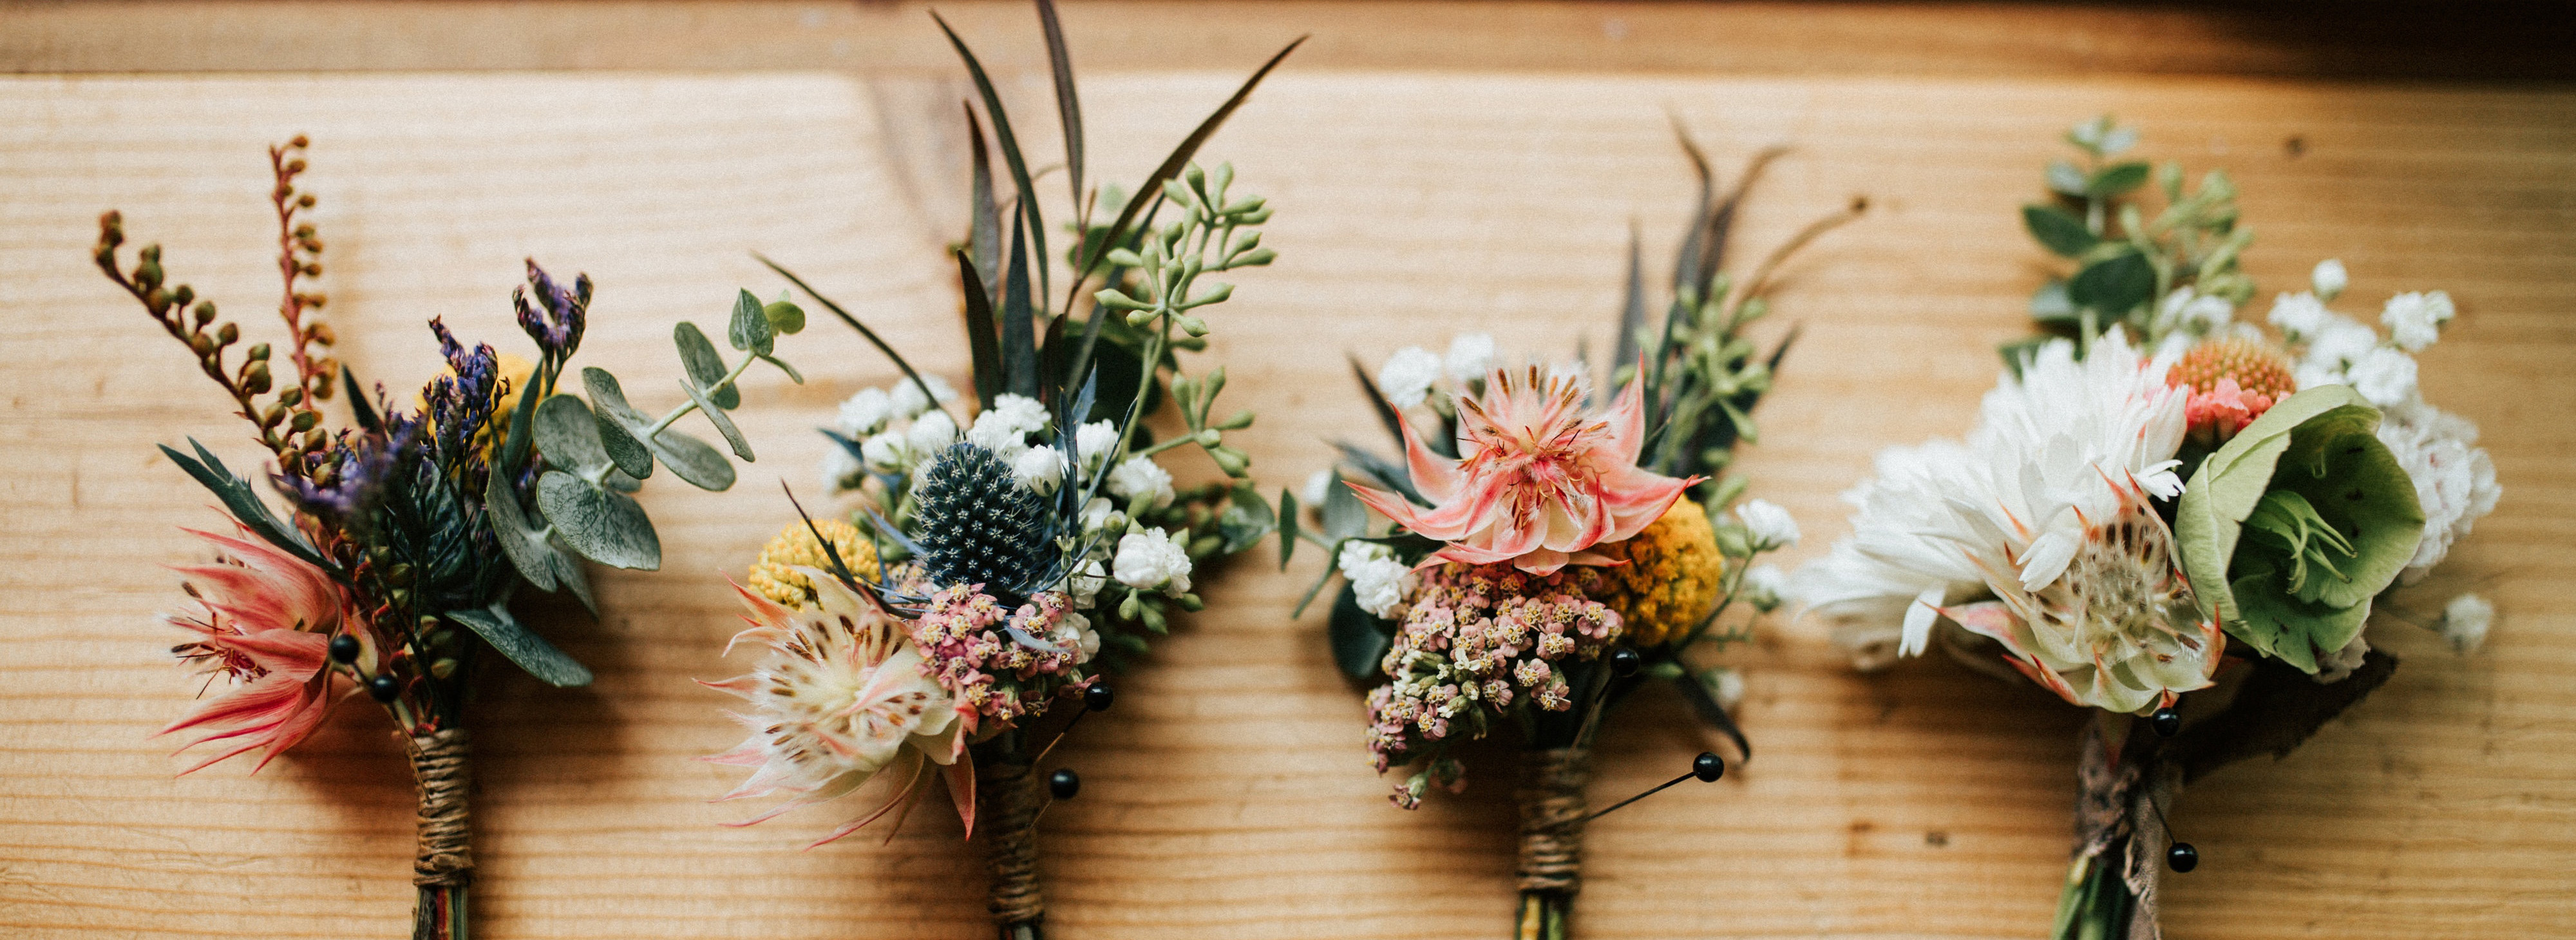 Images of flowers for a Wedding